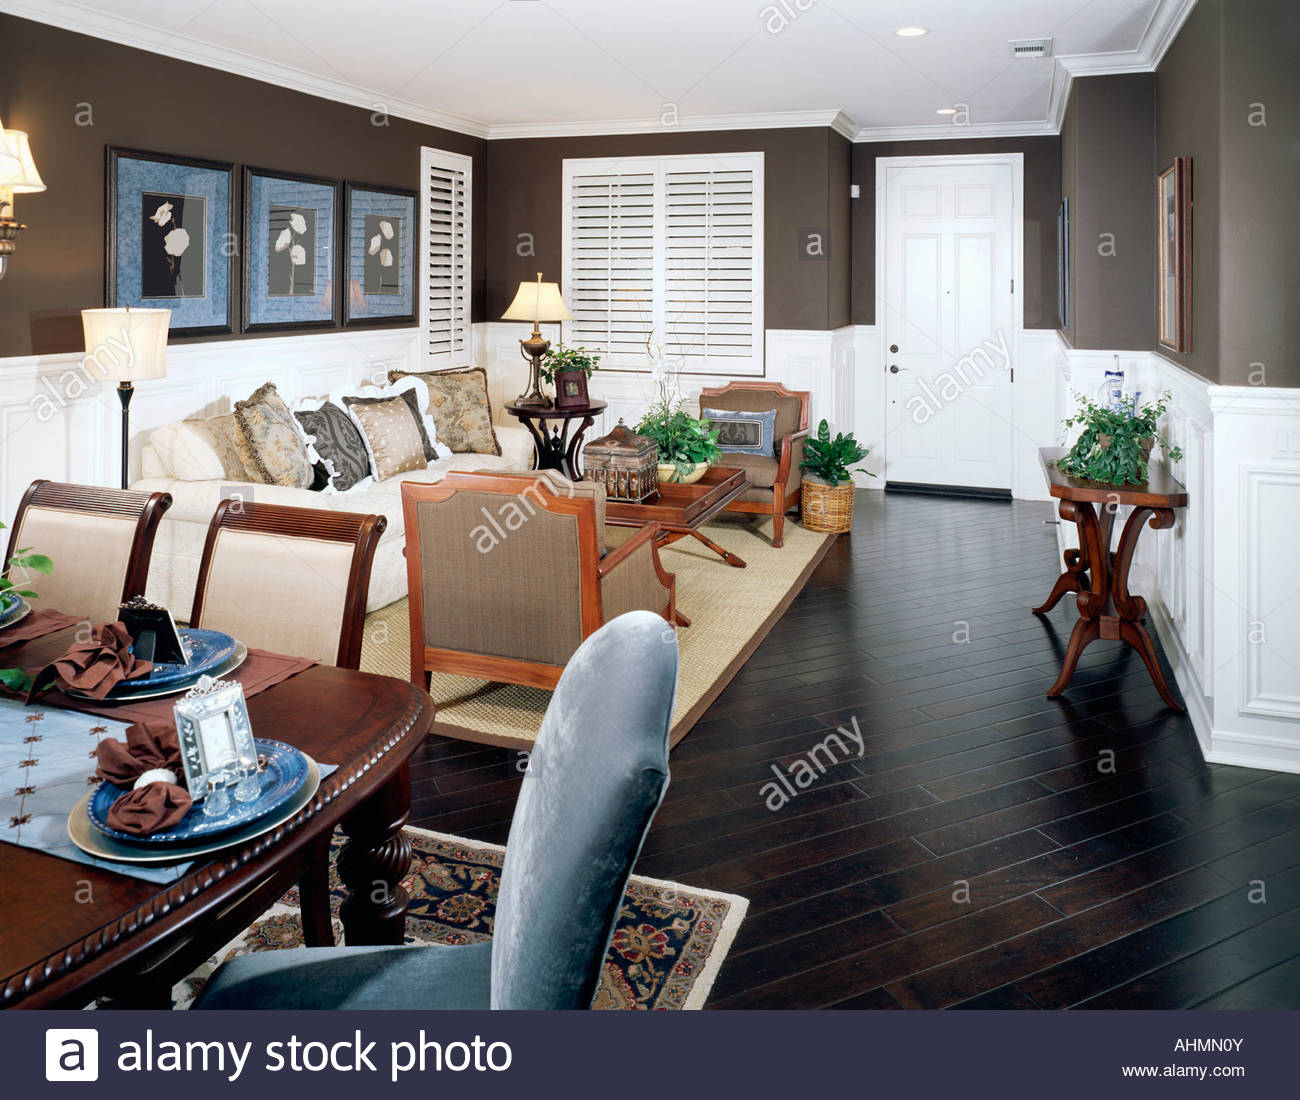 Cozy Living Room with Dark Brown Walls and Floor Stock Photo ...